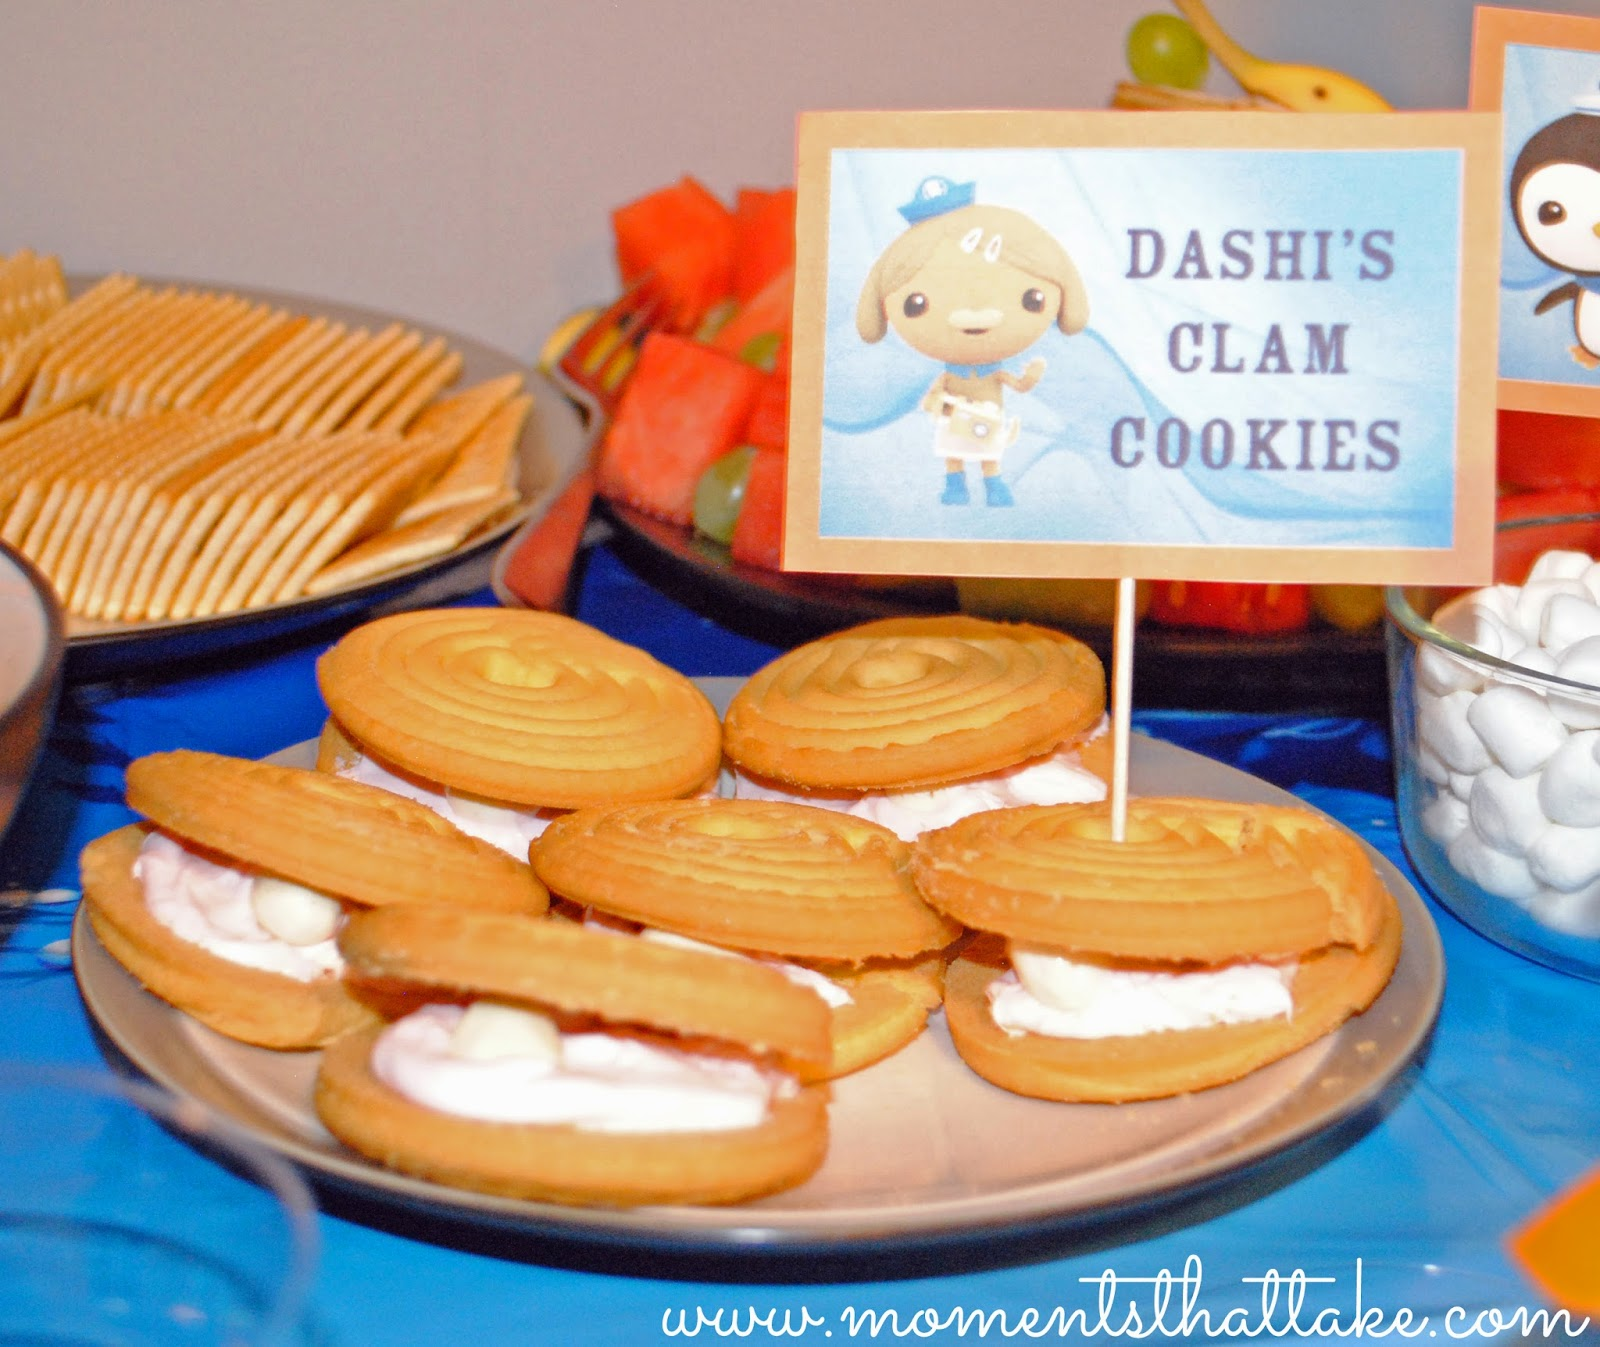 Dashi's Clam Cookies